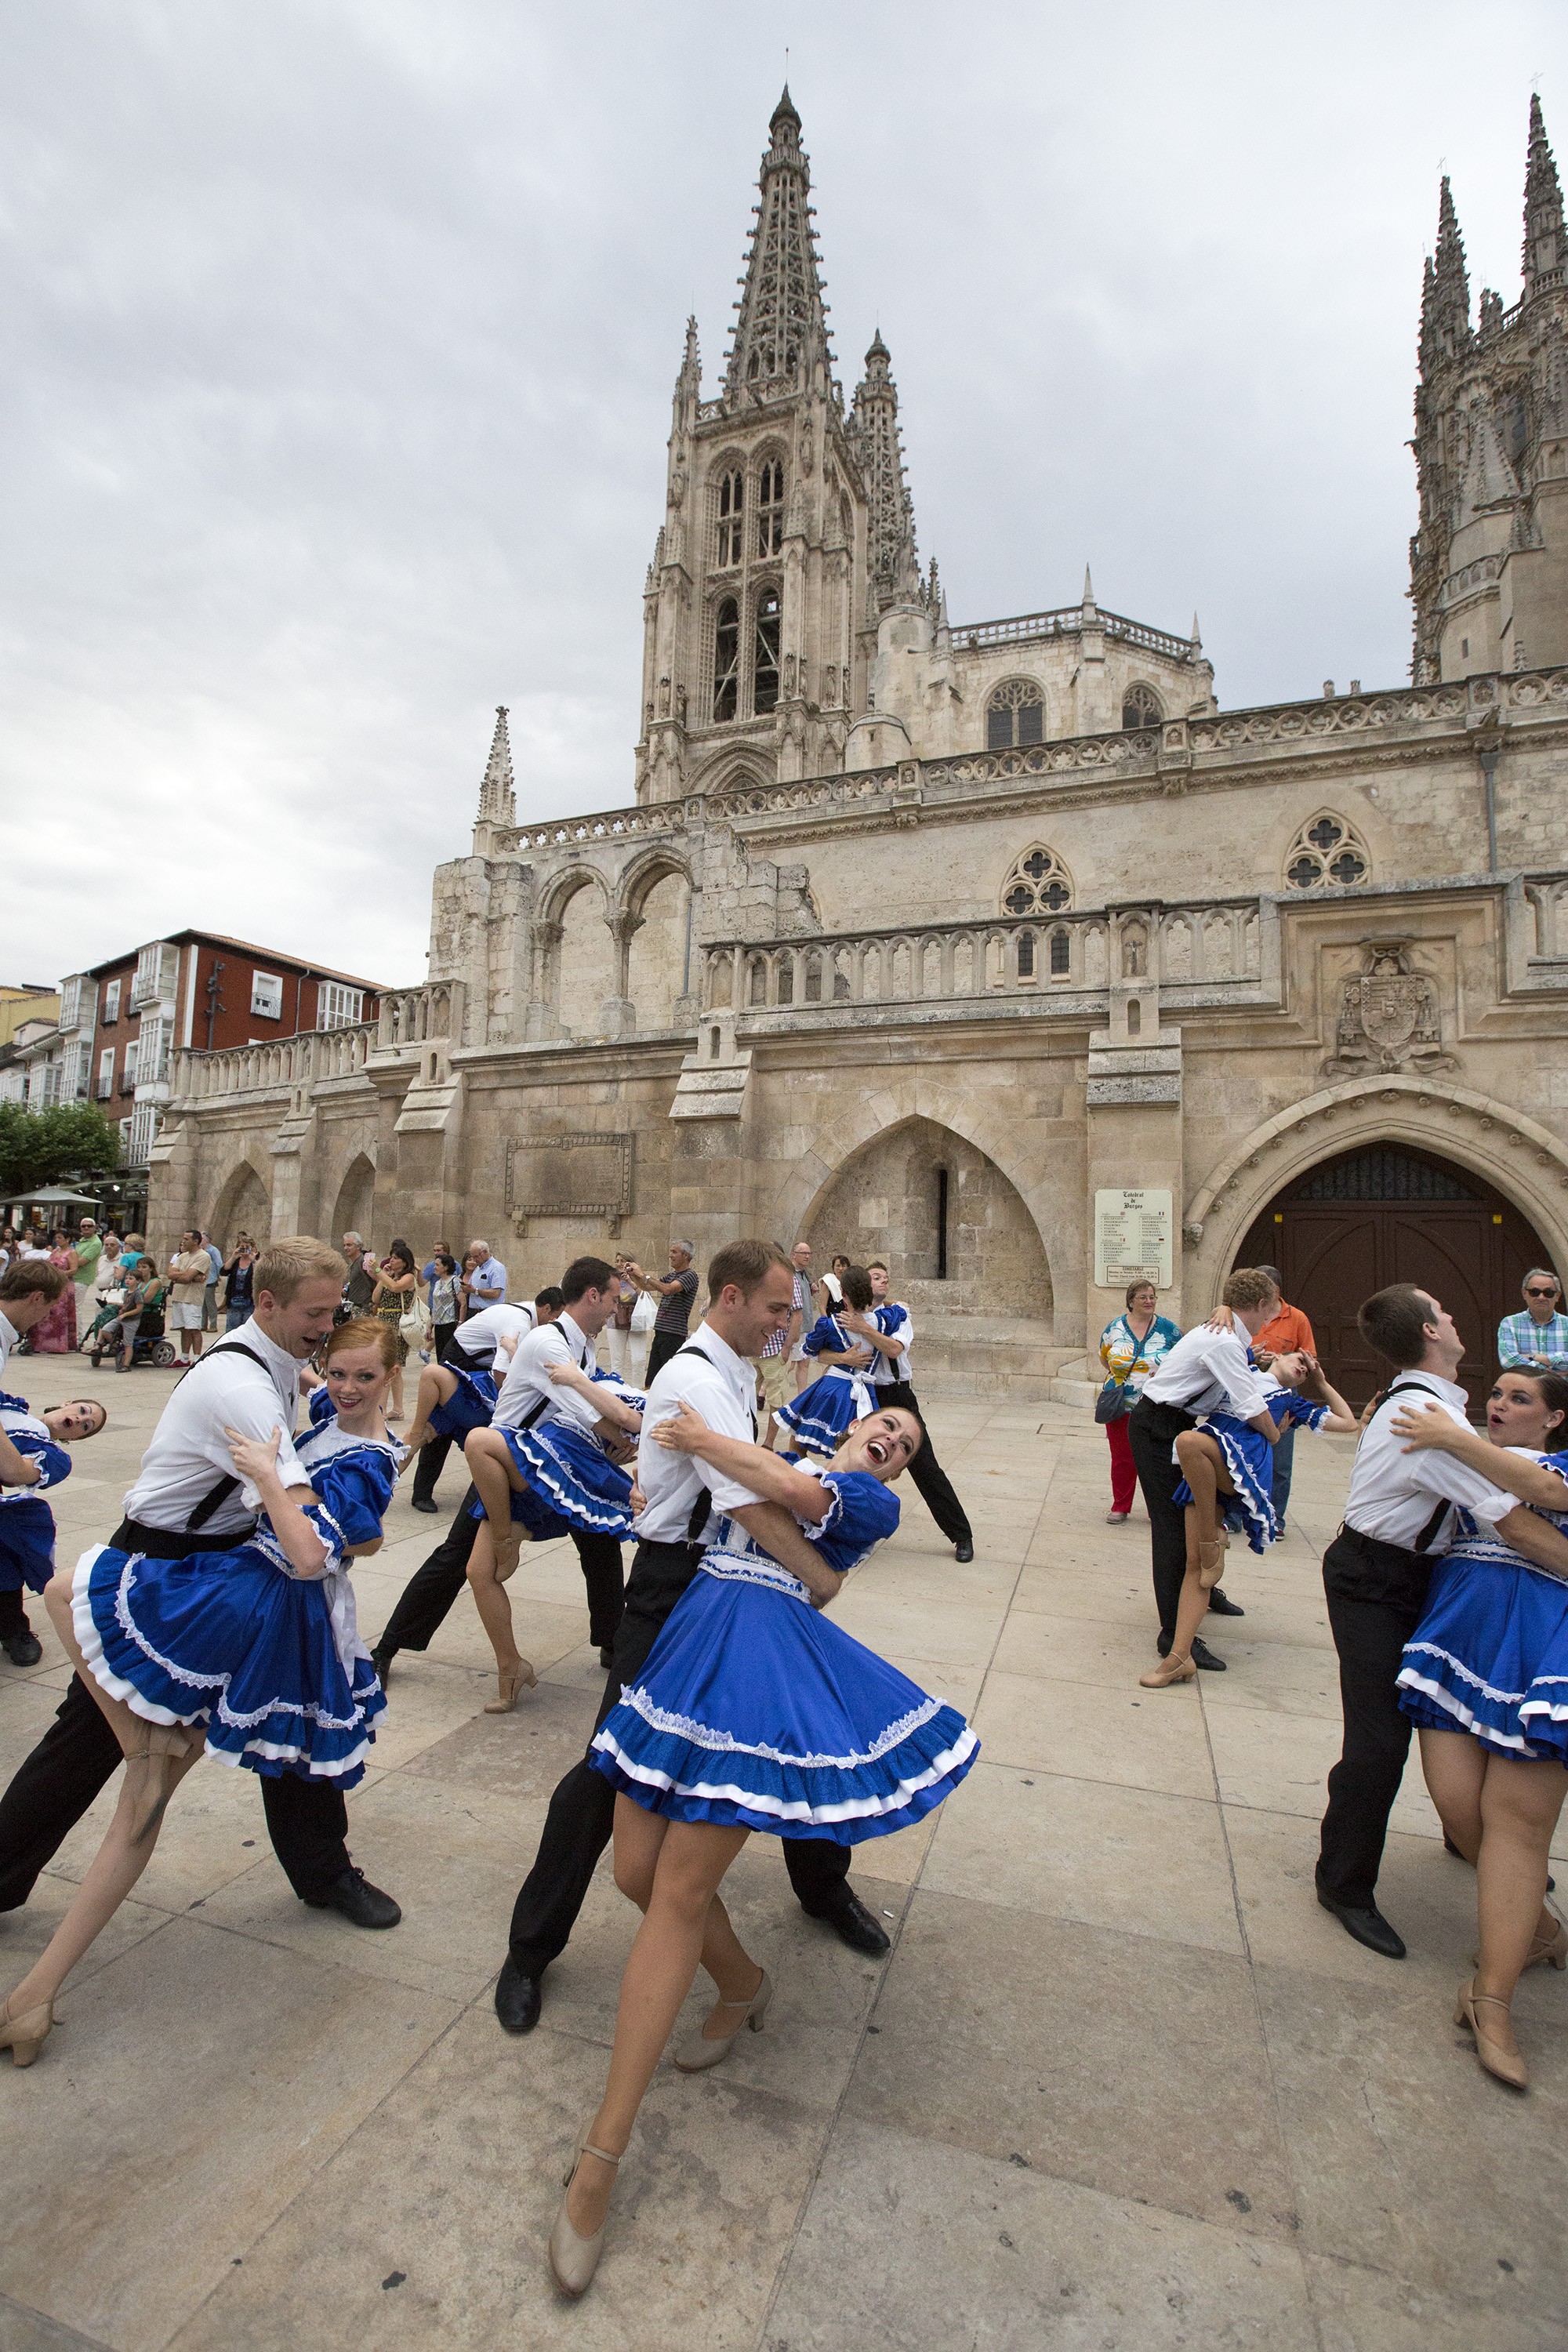 American Folk Dance Ensemble performing at the 2015 International Folkloric Festival 'Ciudad de Burgos', in Spain. Photo by Mark Philbrick. Burgos, Spain International Folkloric Festival Ciudad de Burgos Parade and Performance with Cuba  July 17, 2015  Photography by  Mark A. Philbrick/BYU  Copyright BYU Photo 2015 All Rights Reserved photo@byu.edu (801)422-7322  7965